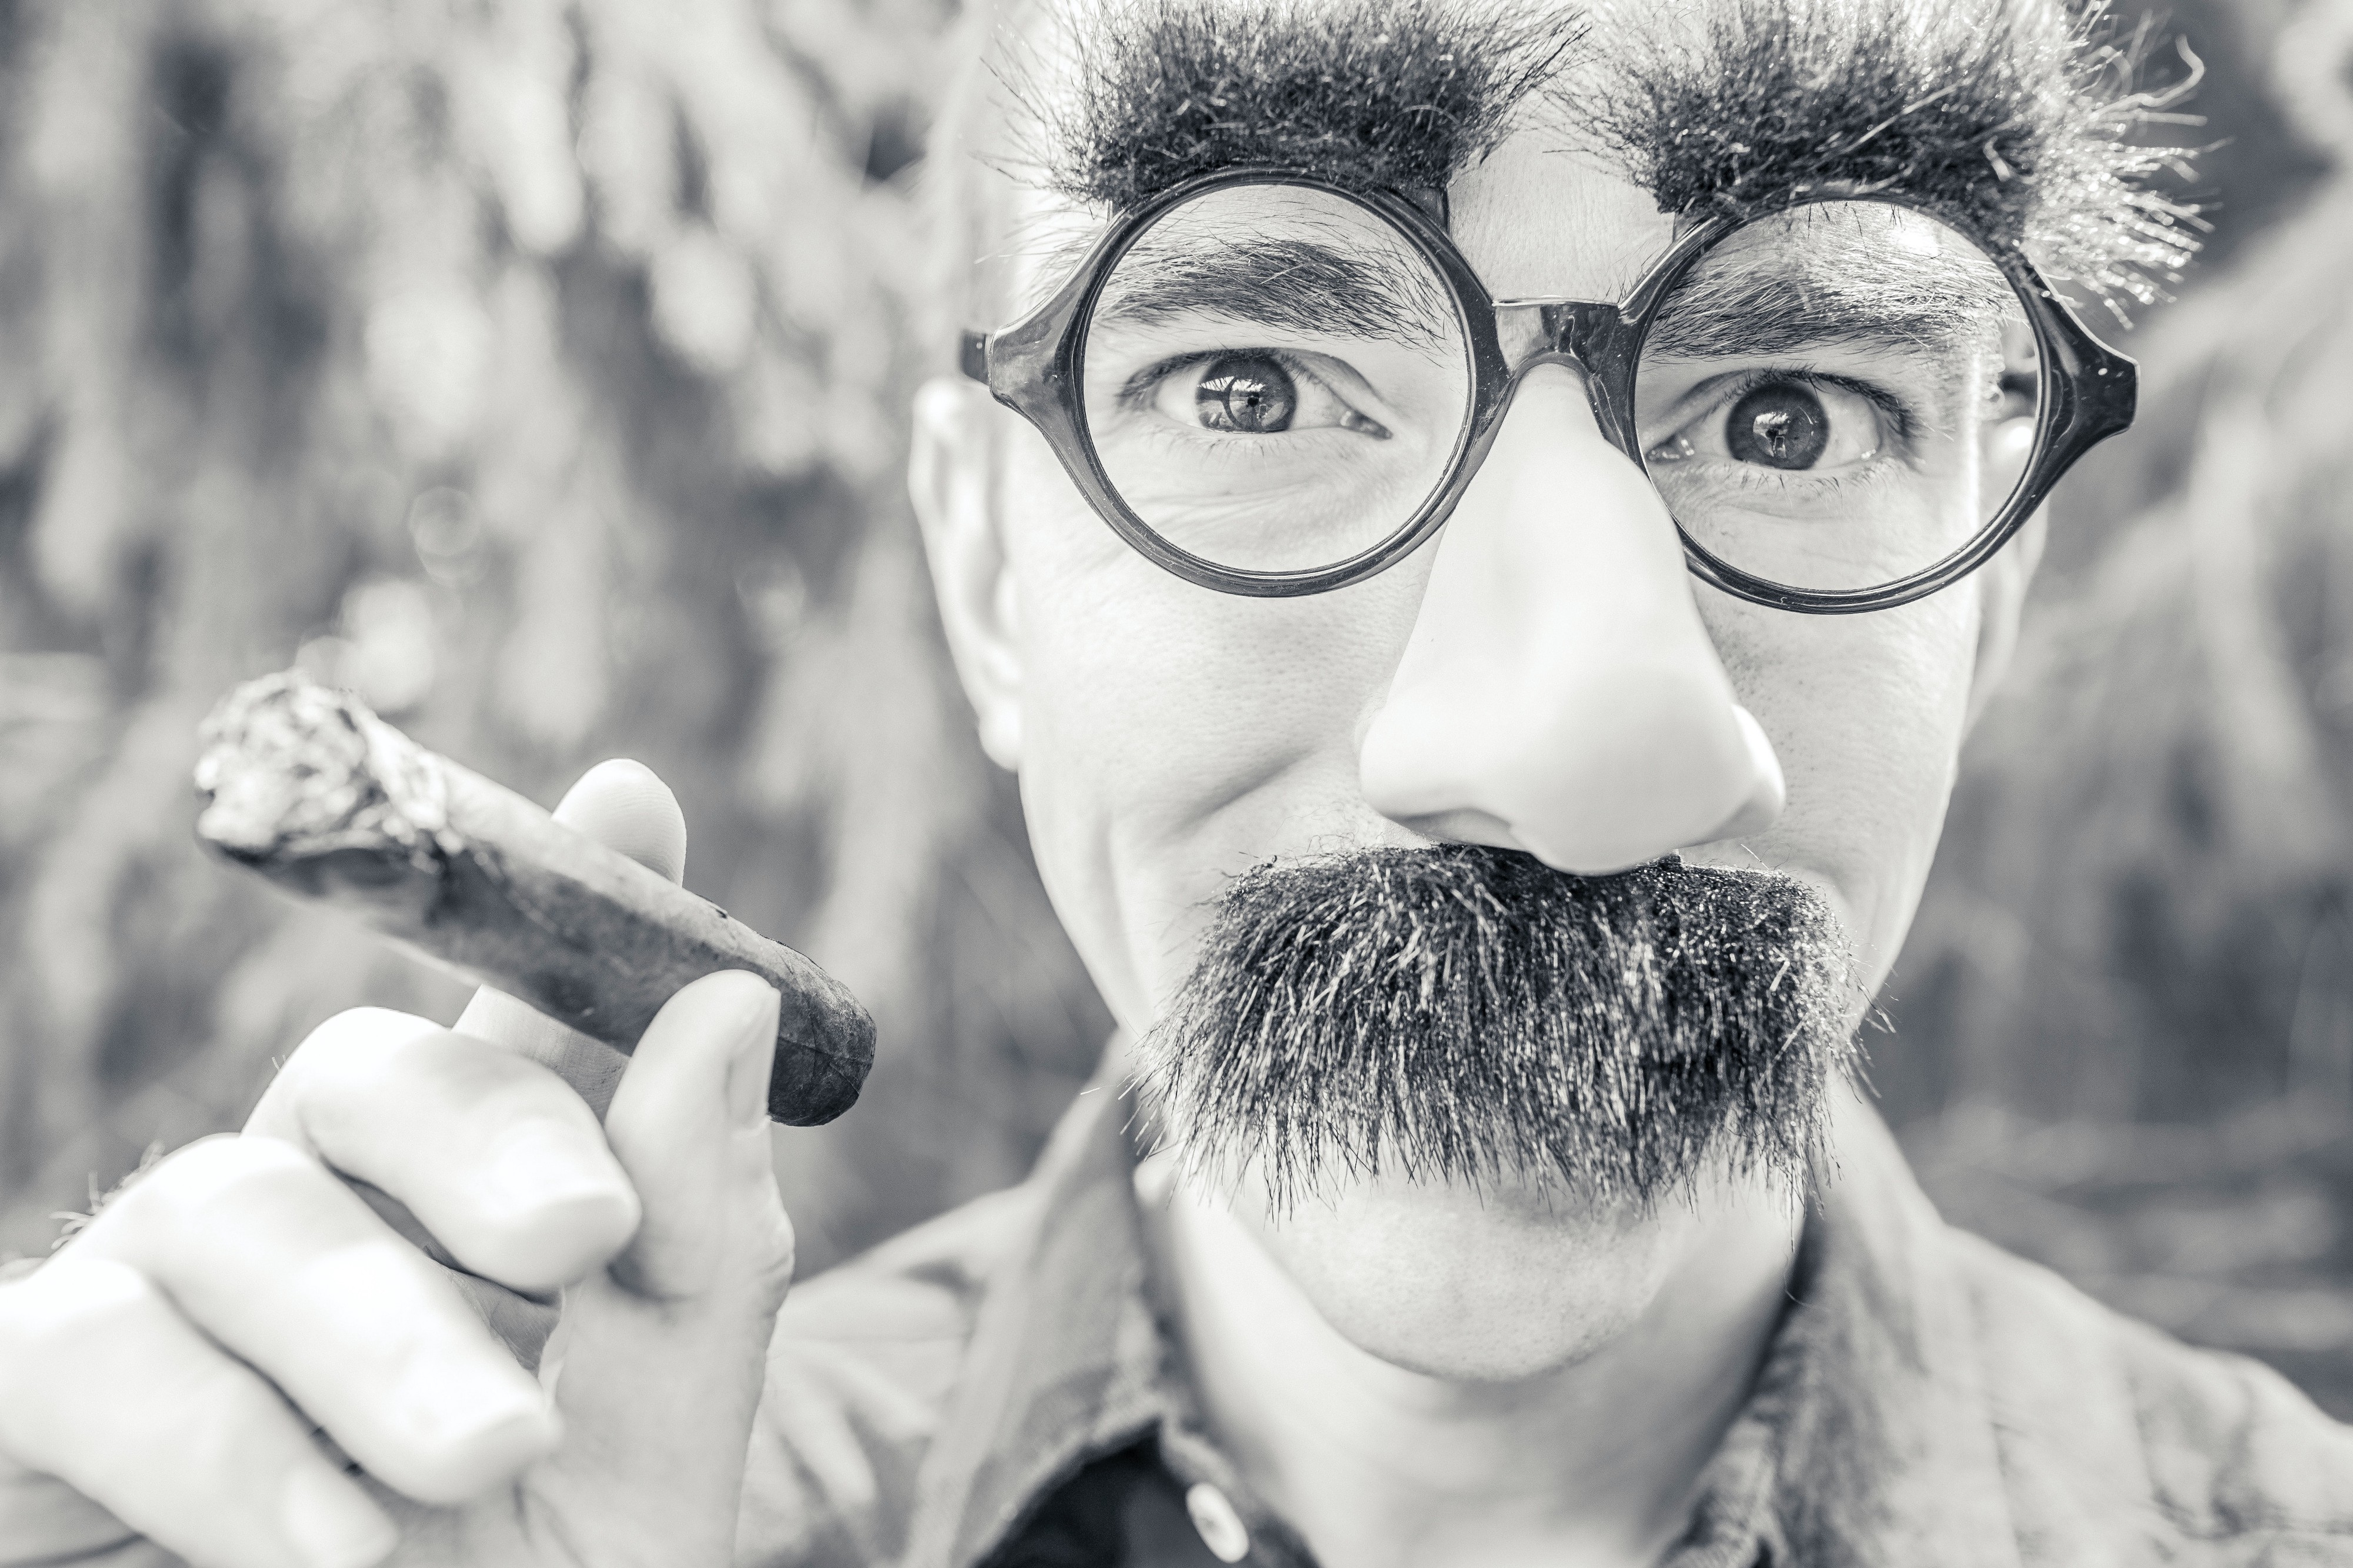 Guy trying to be funny by wearing Grouch Marx looking glasses and mustache.